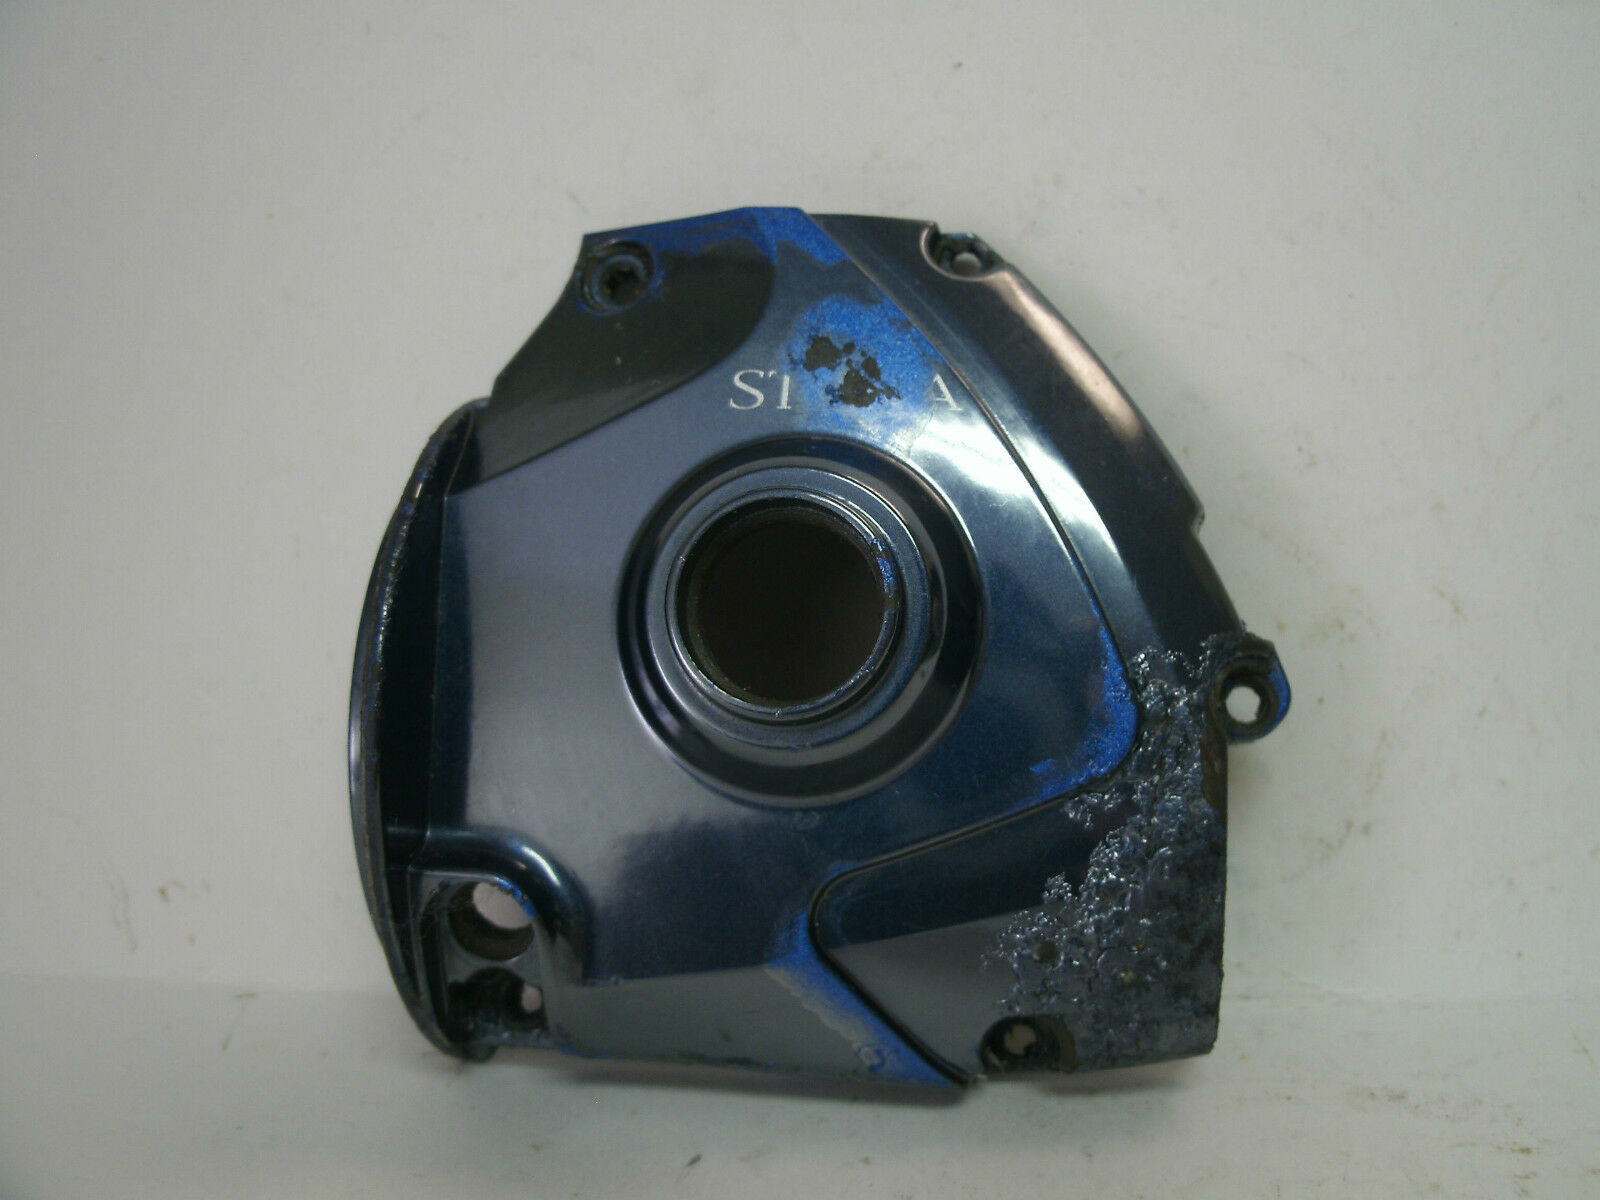 USED SHIMANO REEL PART Stella 20000 FA Spinning Reel - Body Side Cover Corrosion